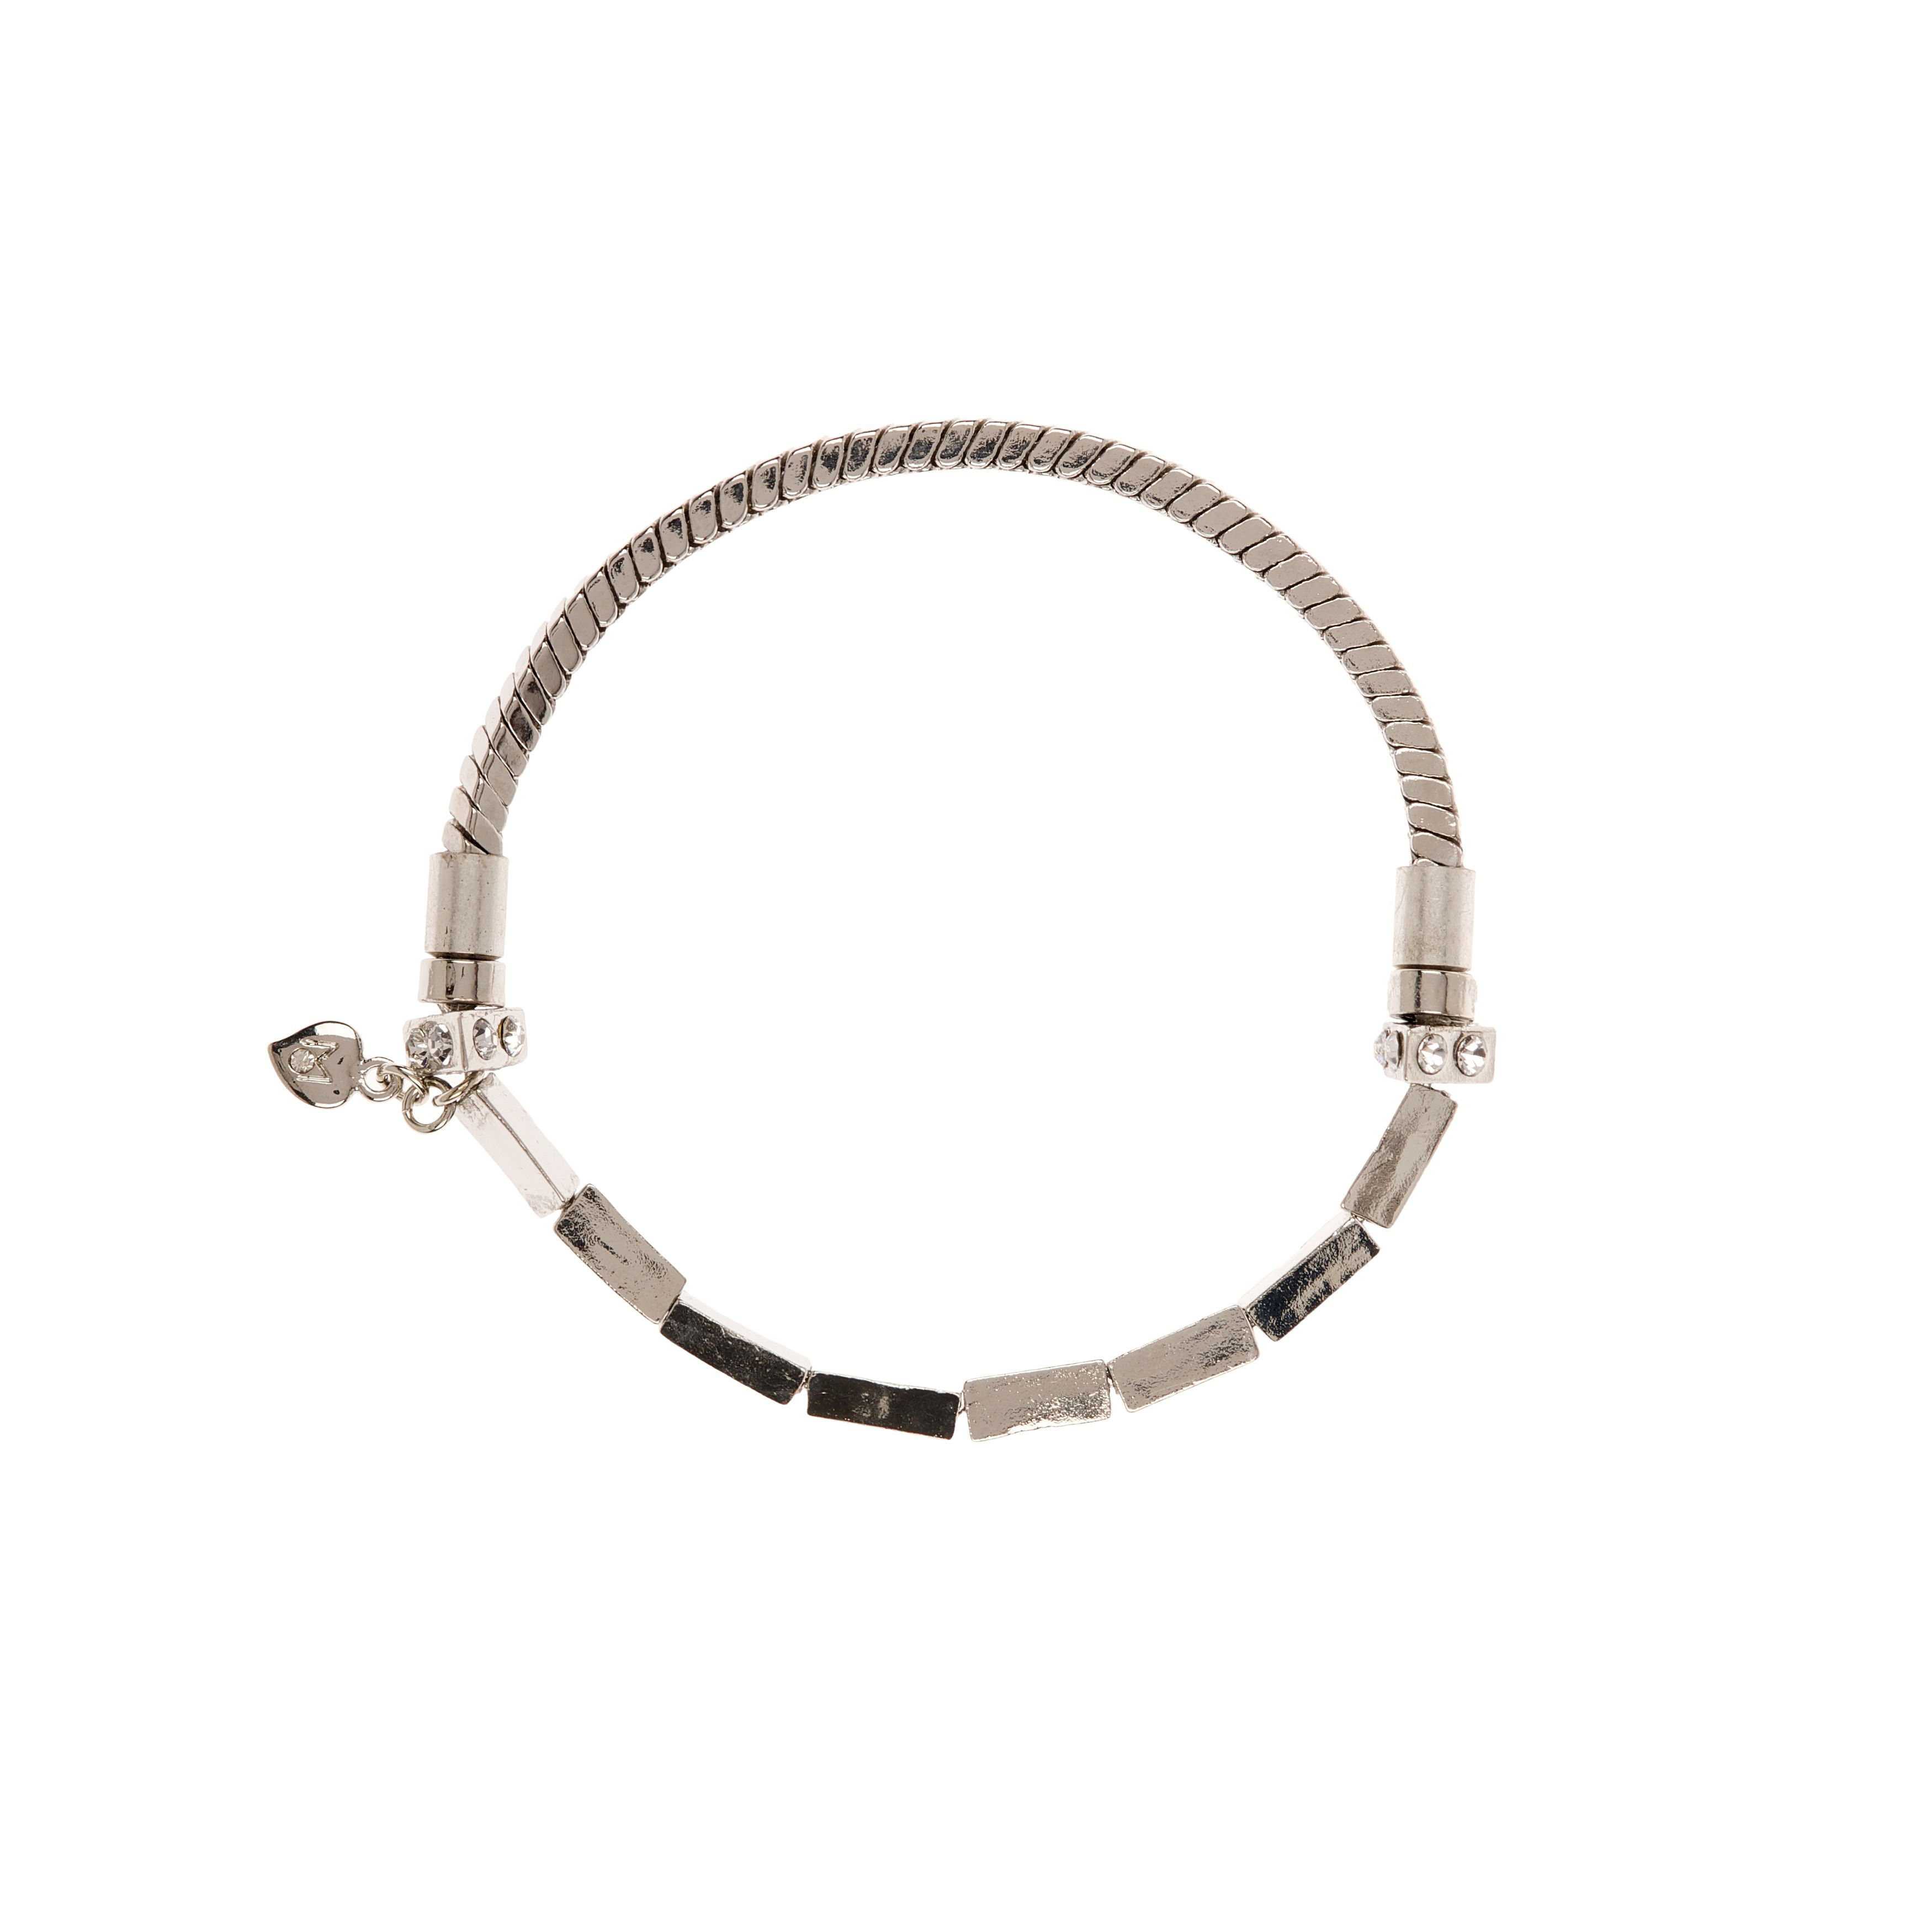 Moonlight silver chain stretch bracelet